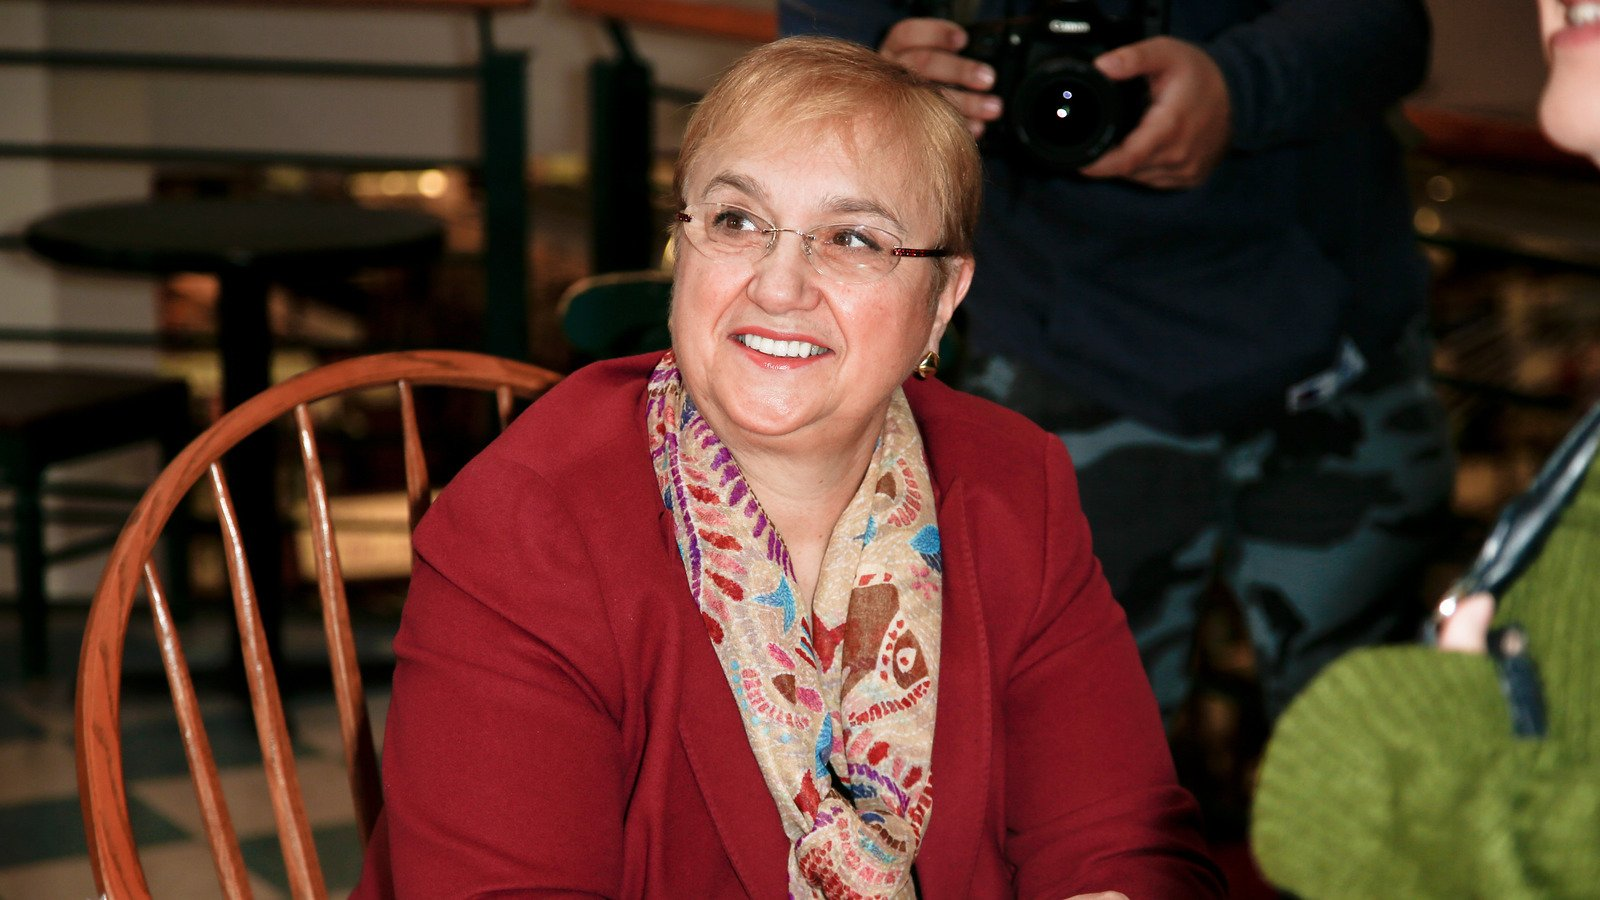 Lidia Bastianich's Transformation Is Seriously Turning Heads